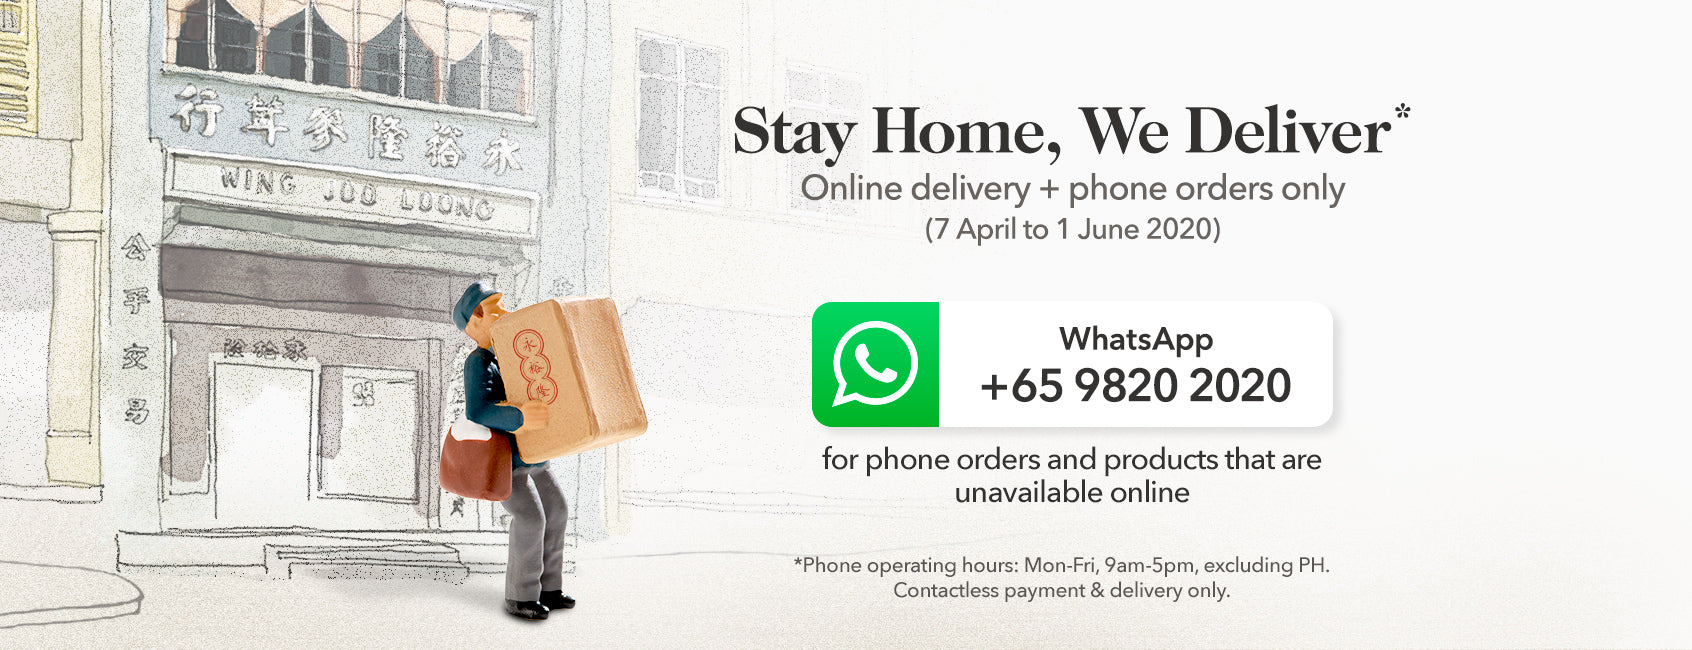 Stay Home, We Deliver. Whatsapp +65 9820 2020